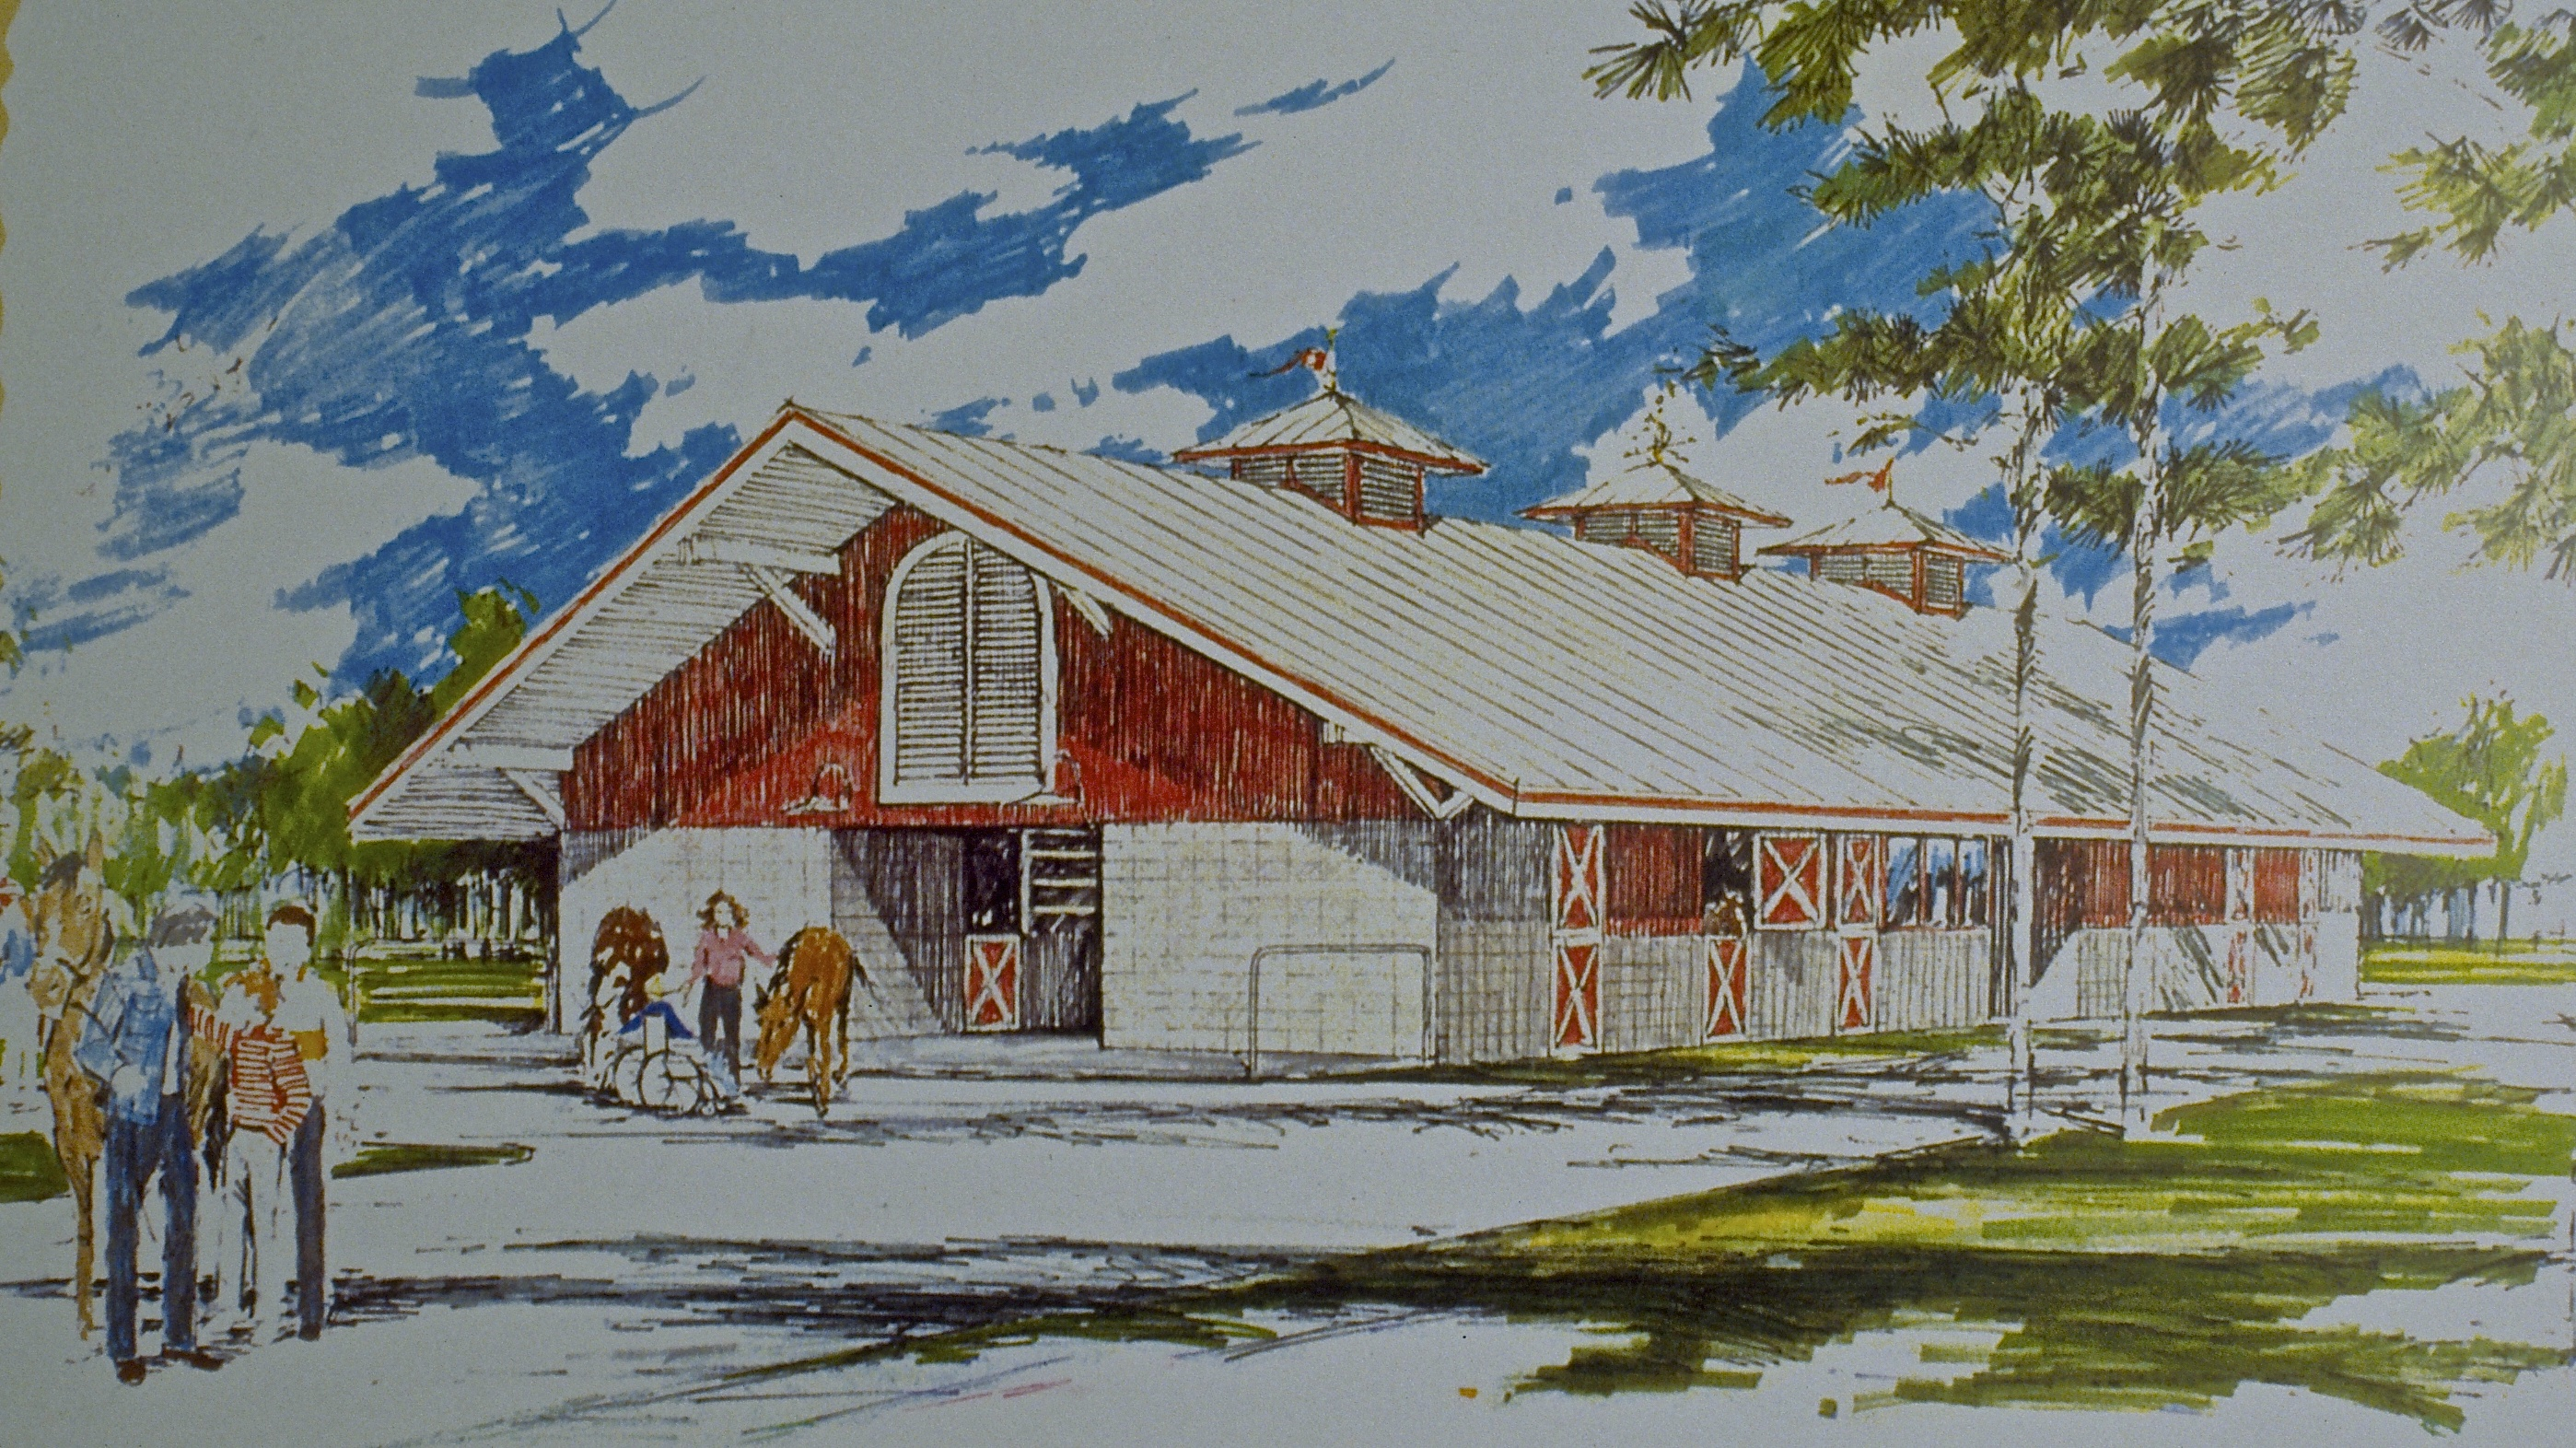 Barn for Horses and the Handicapped